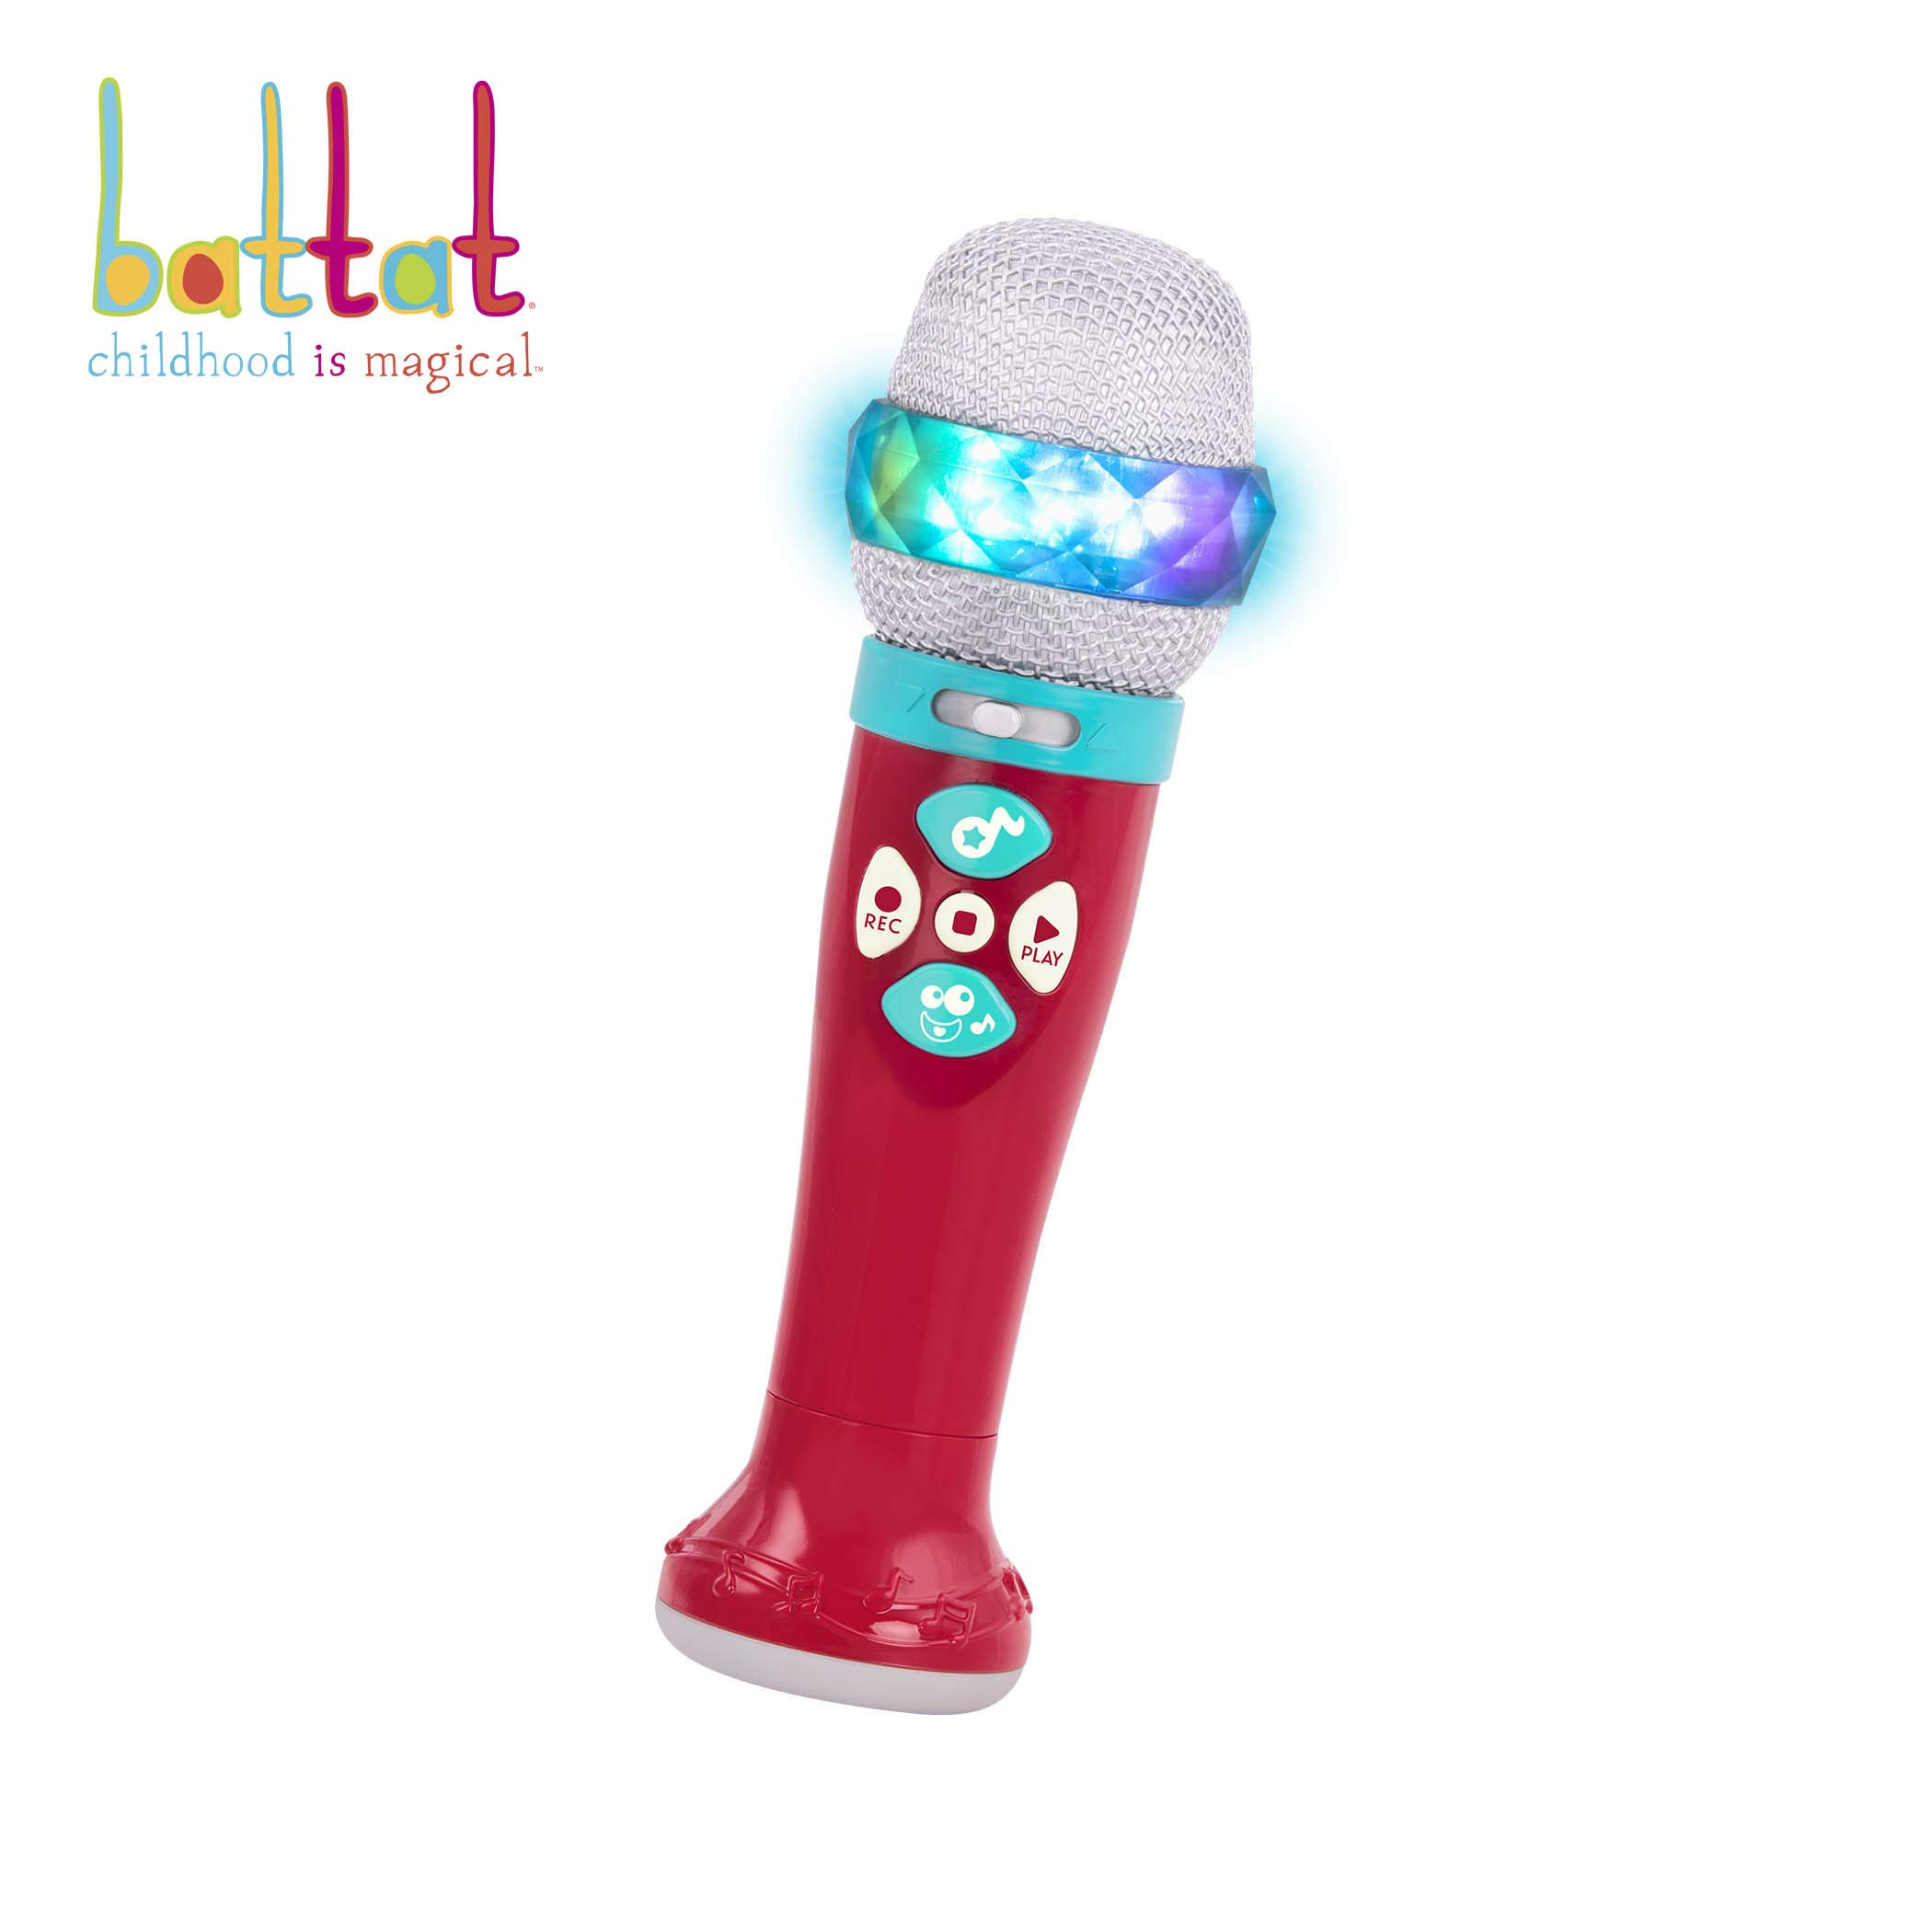 Battat - Musical Light Show Microphone - Light-Up Sing-Along Mic with 5 Songs and Record Functions for Kids 2 Years + (Bluetooth) by Battat